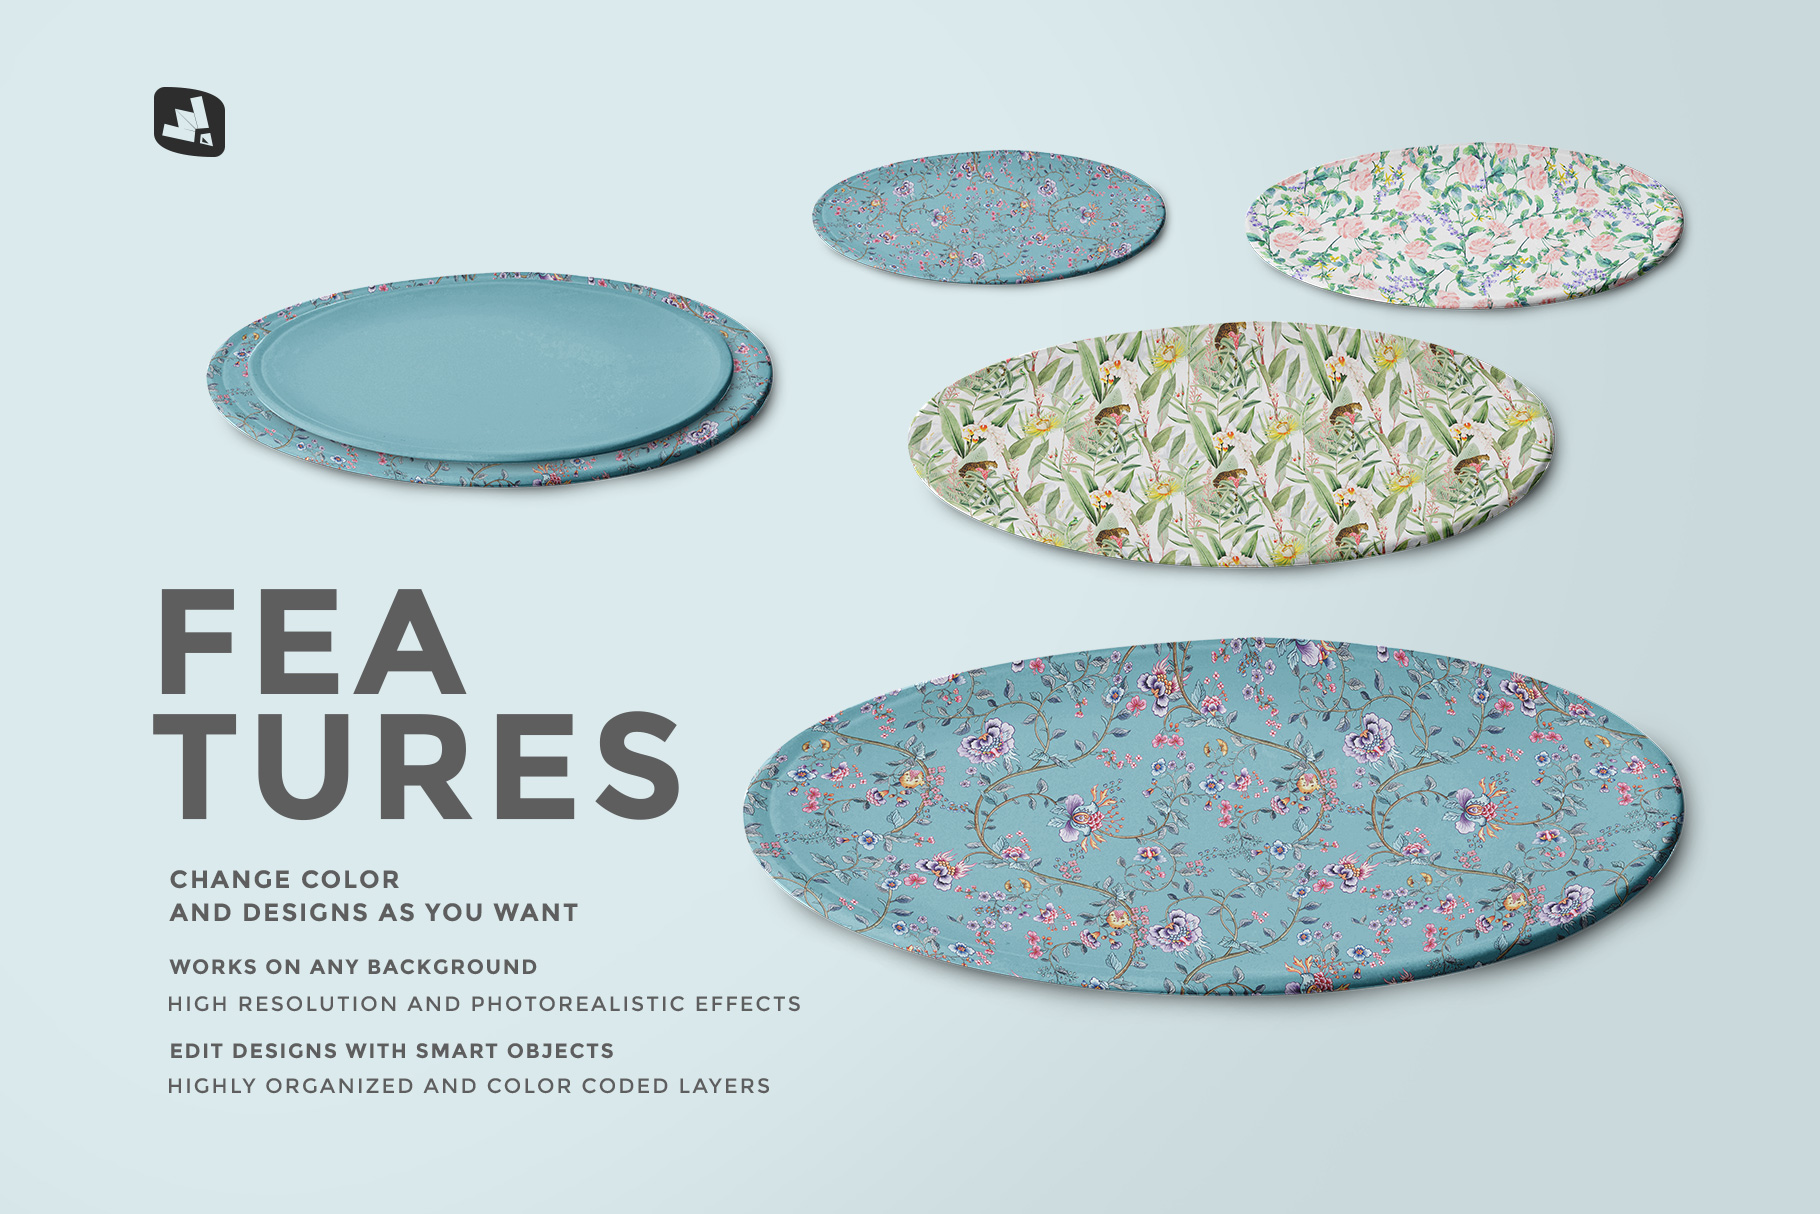 features of the single ceramic dinner plate mockup